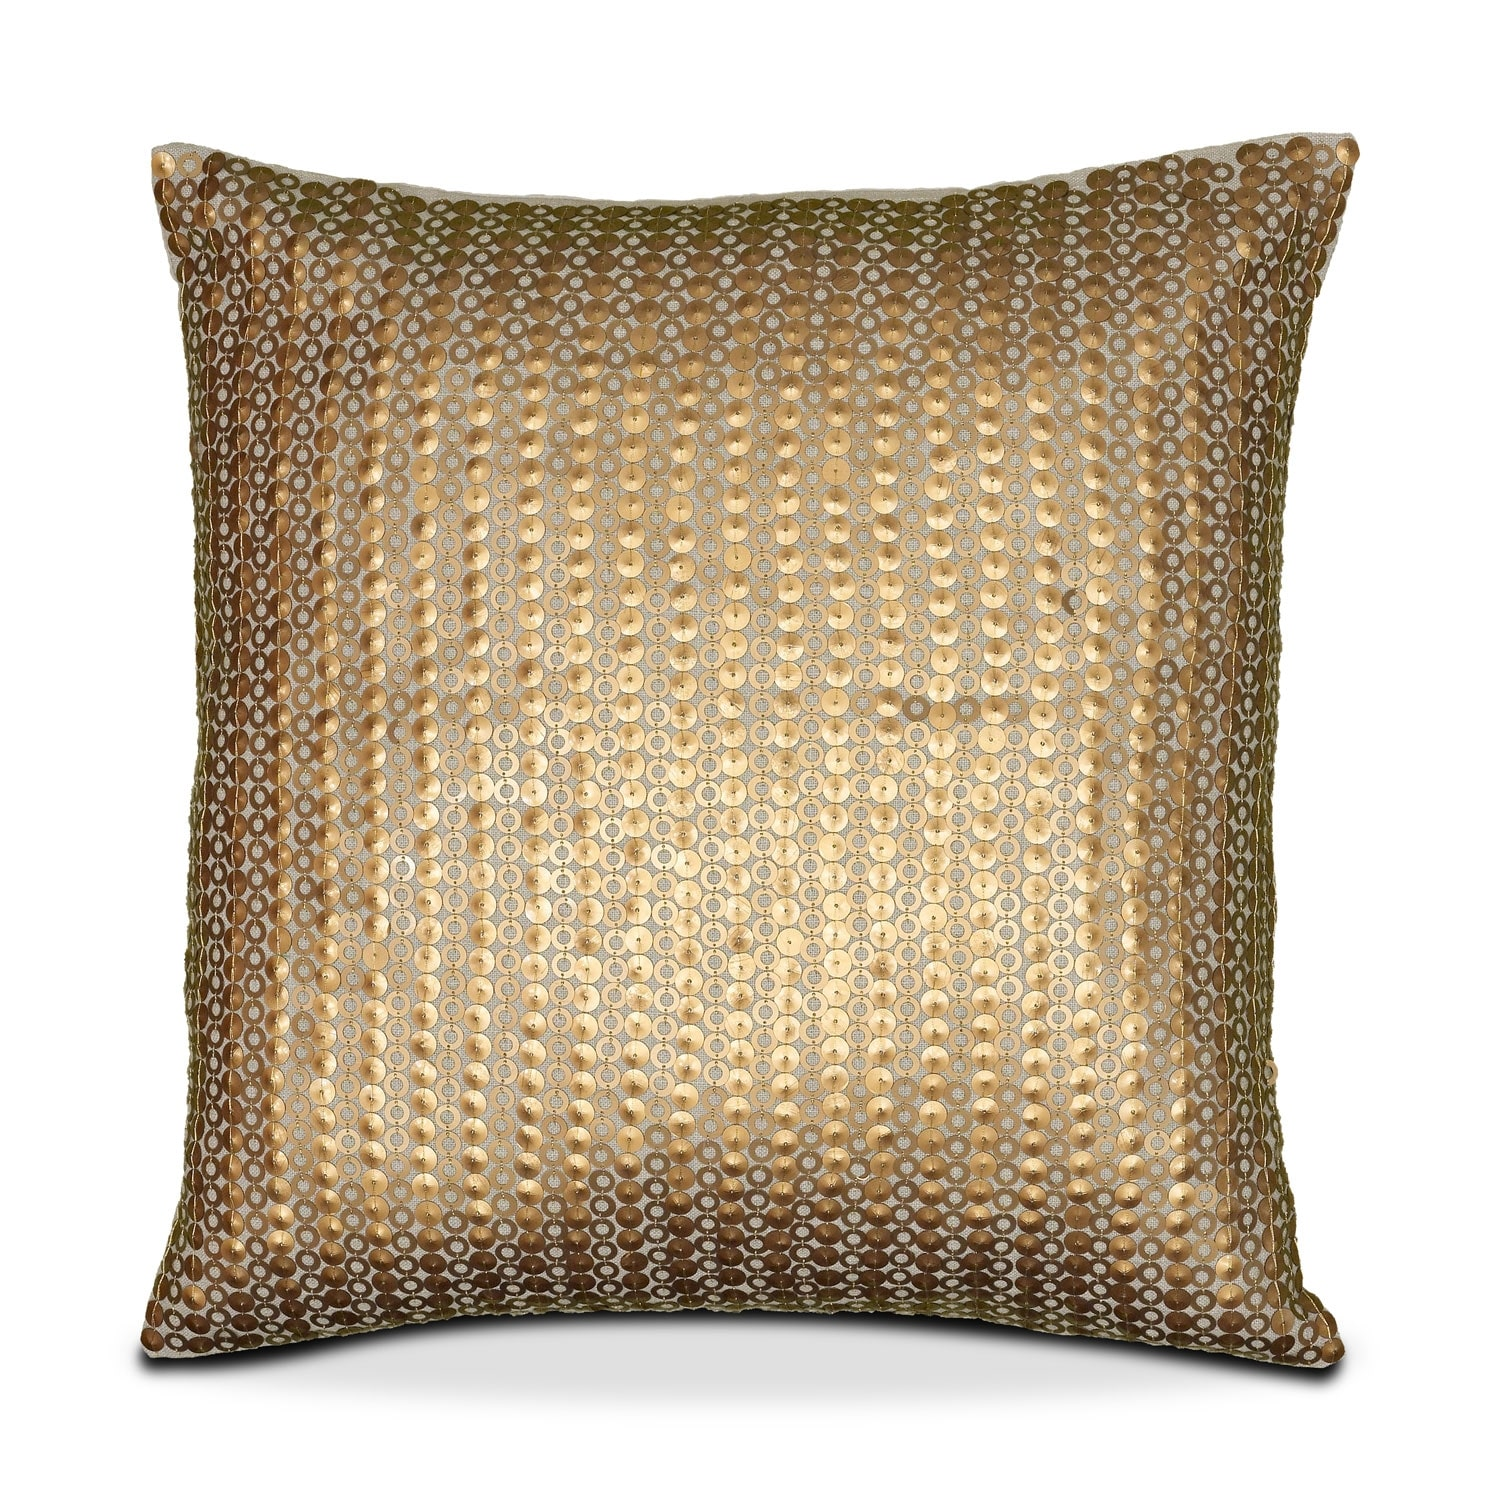 Endora Decorative Pillow